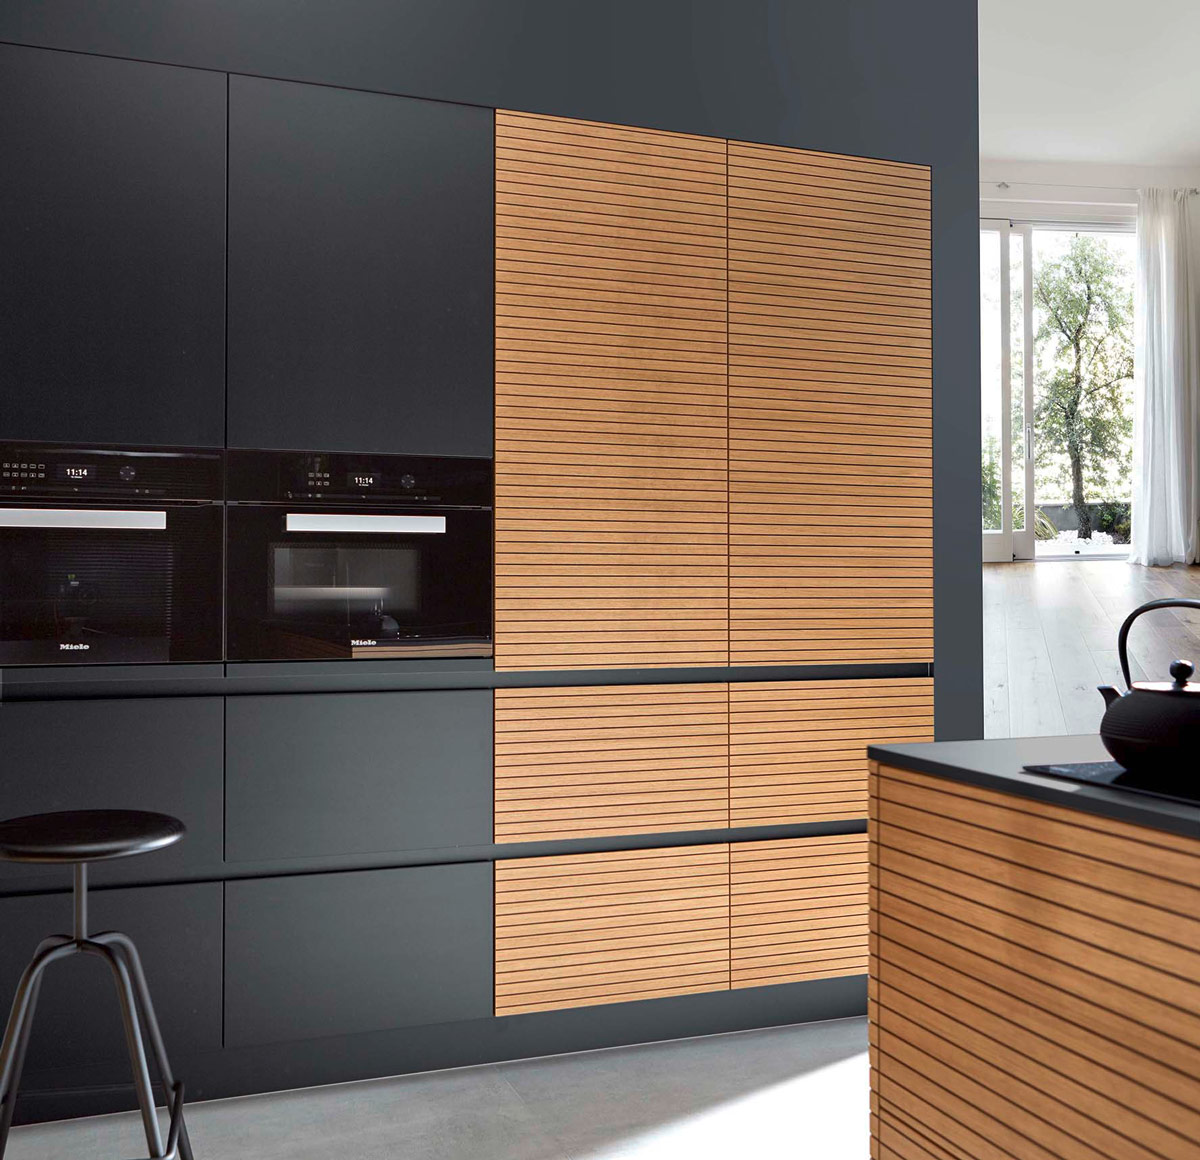 Innovative design of a handle-free kitchen cabinets